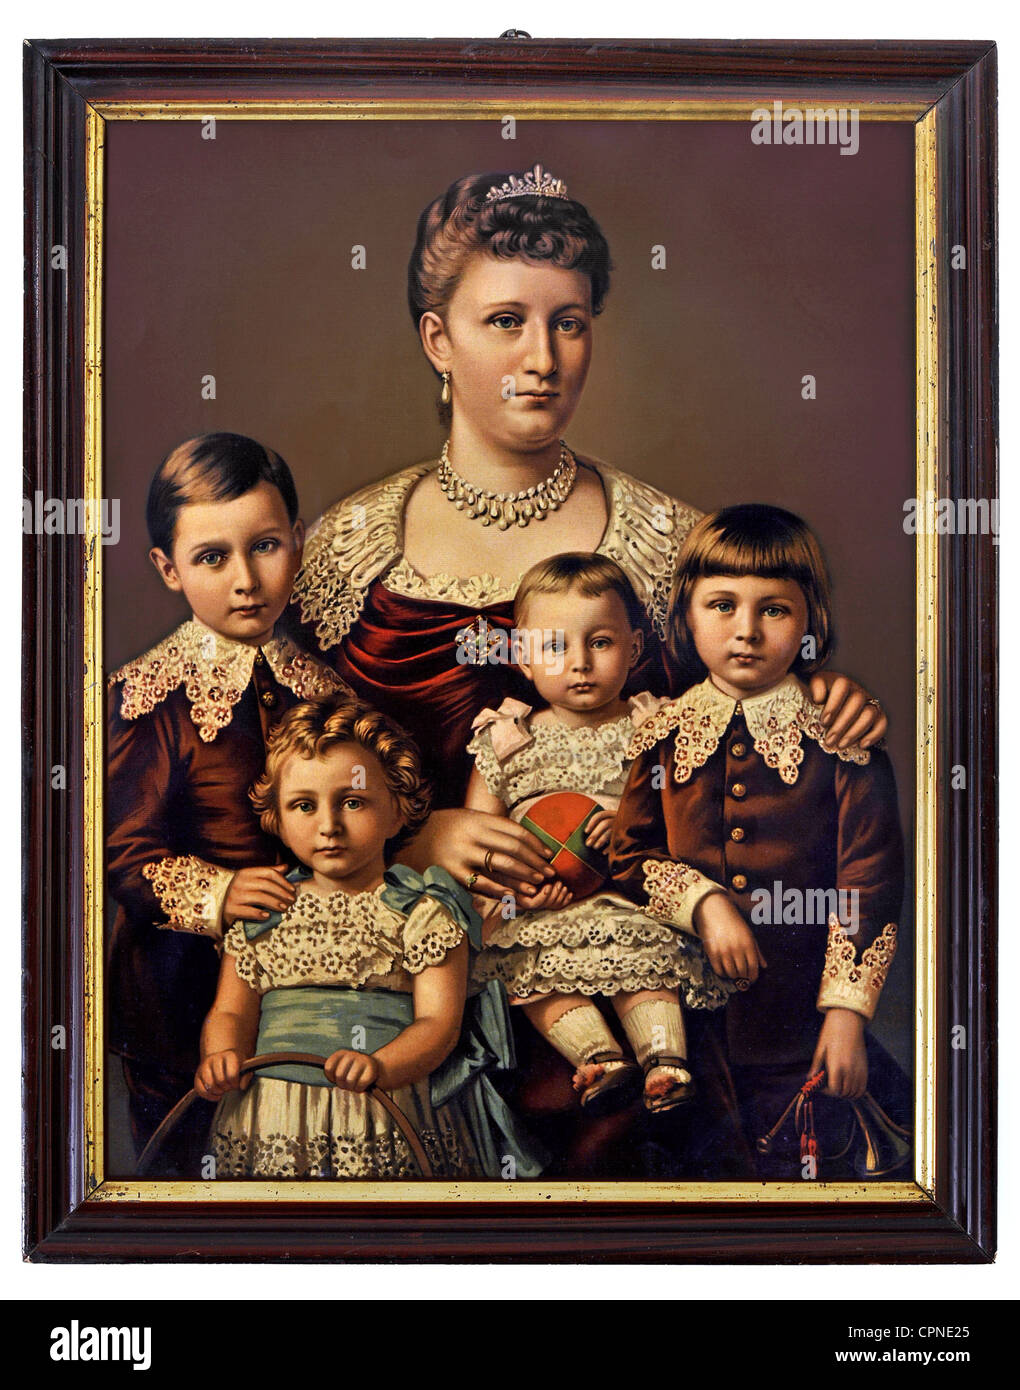 Empress Auguste Viktoria (1858 - 1921), wife of emperor William II, half length, with four of her seven children, from left: Crown Prince William (1882 - 1951), Prince Joachim (1890 - 1920), princess Viktoria-Luise (1892 - 1980), prince August Wilhelm (1887 - 1949), Germany, 1893, Stock Photo